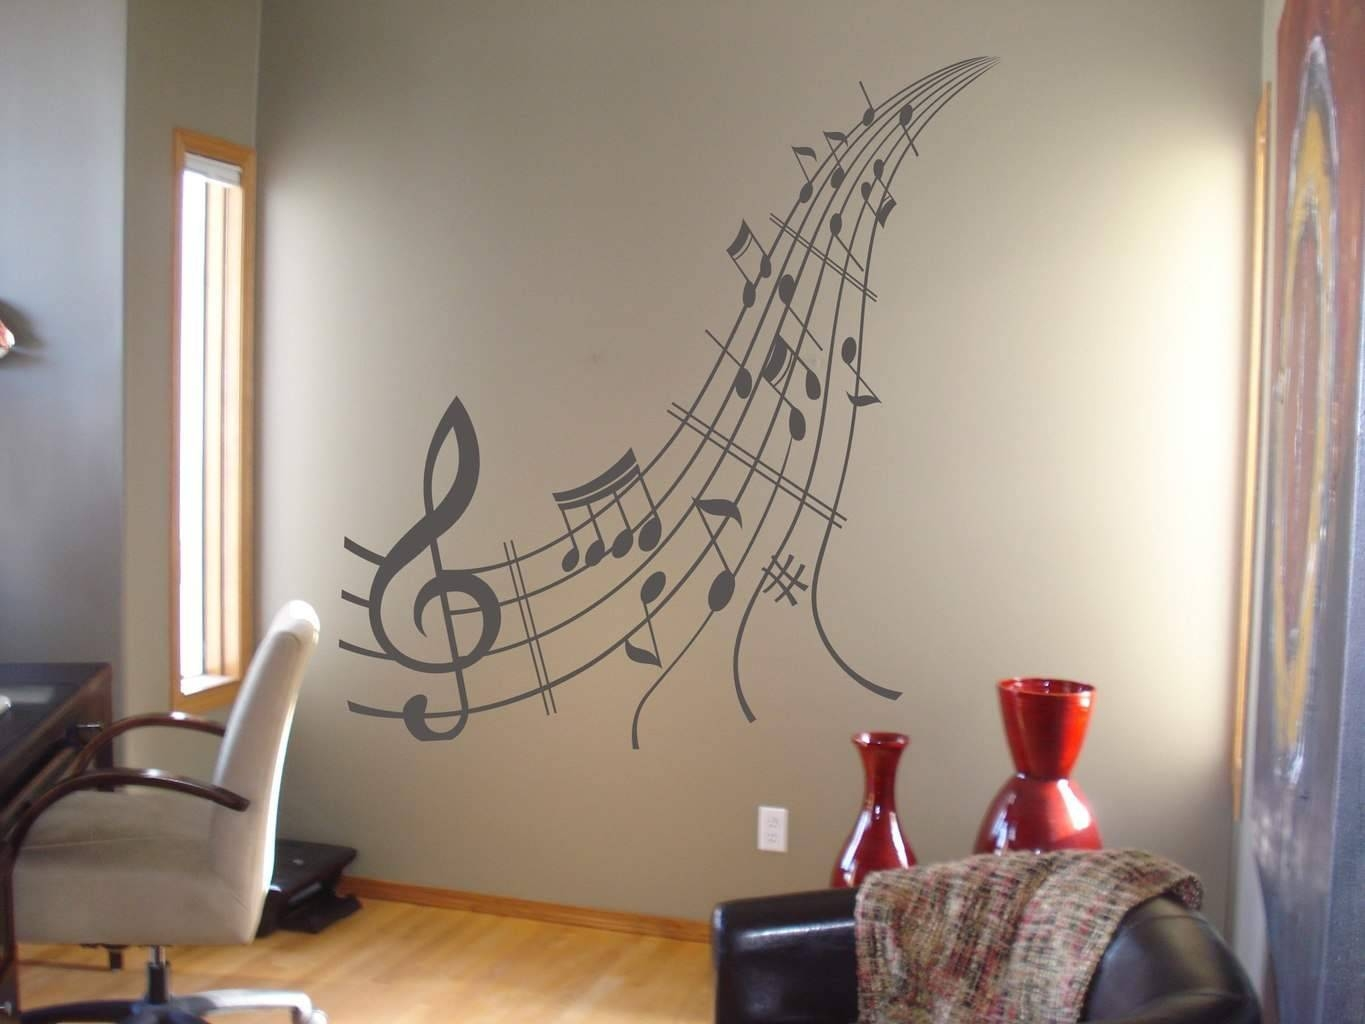 Music Notes Wall Art Decal | Music Wall Decal Sticker Pertaining To Best And Newest Music Note Wall Art (View 10 of 20)